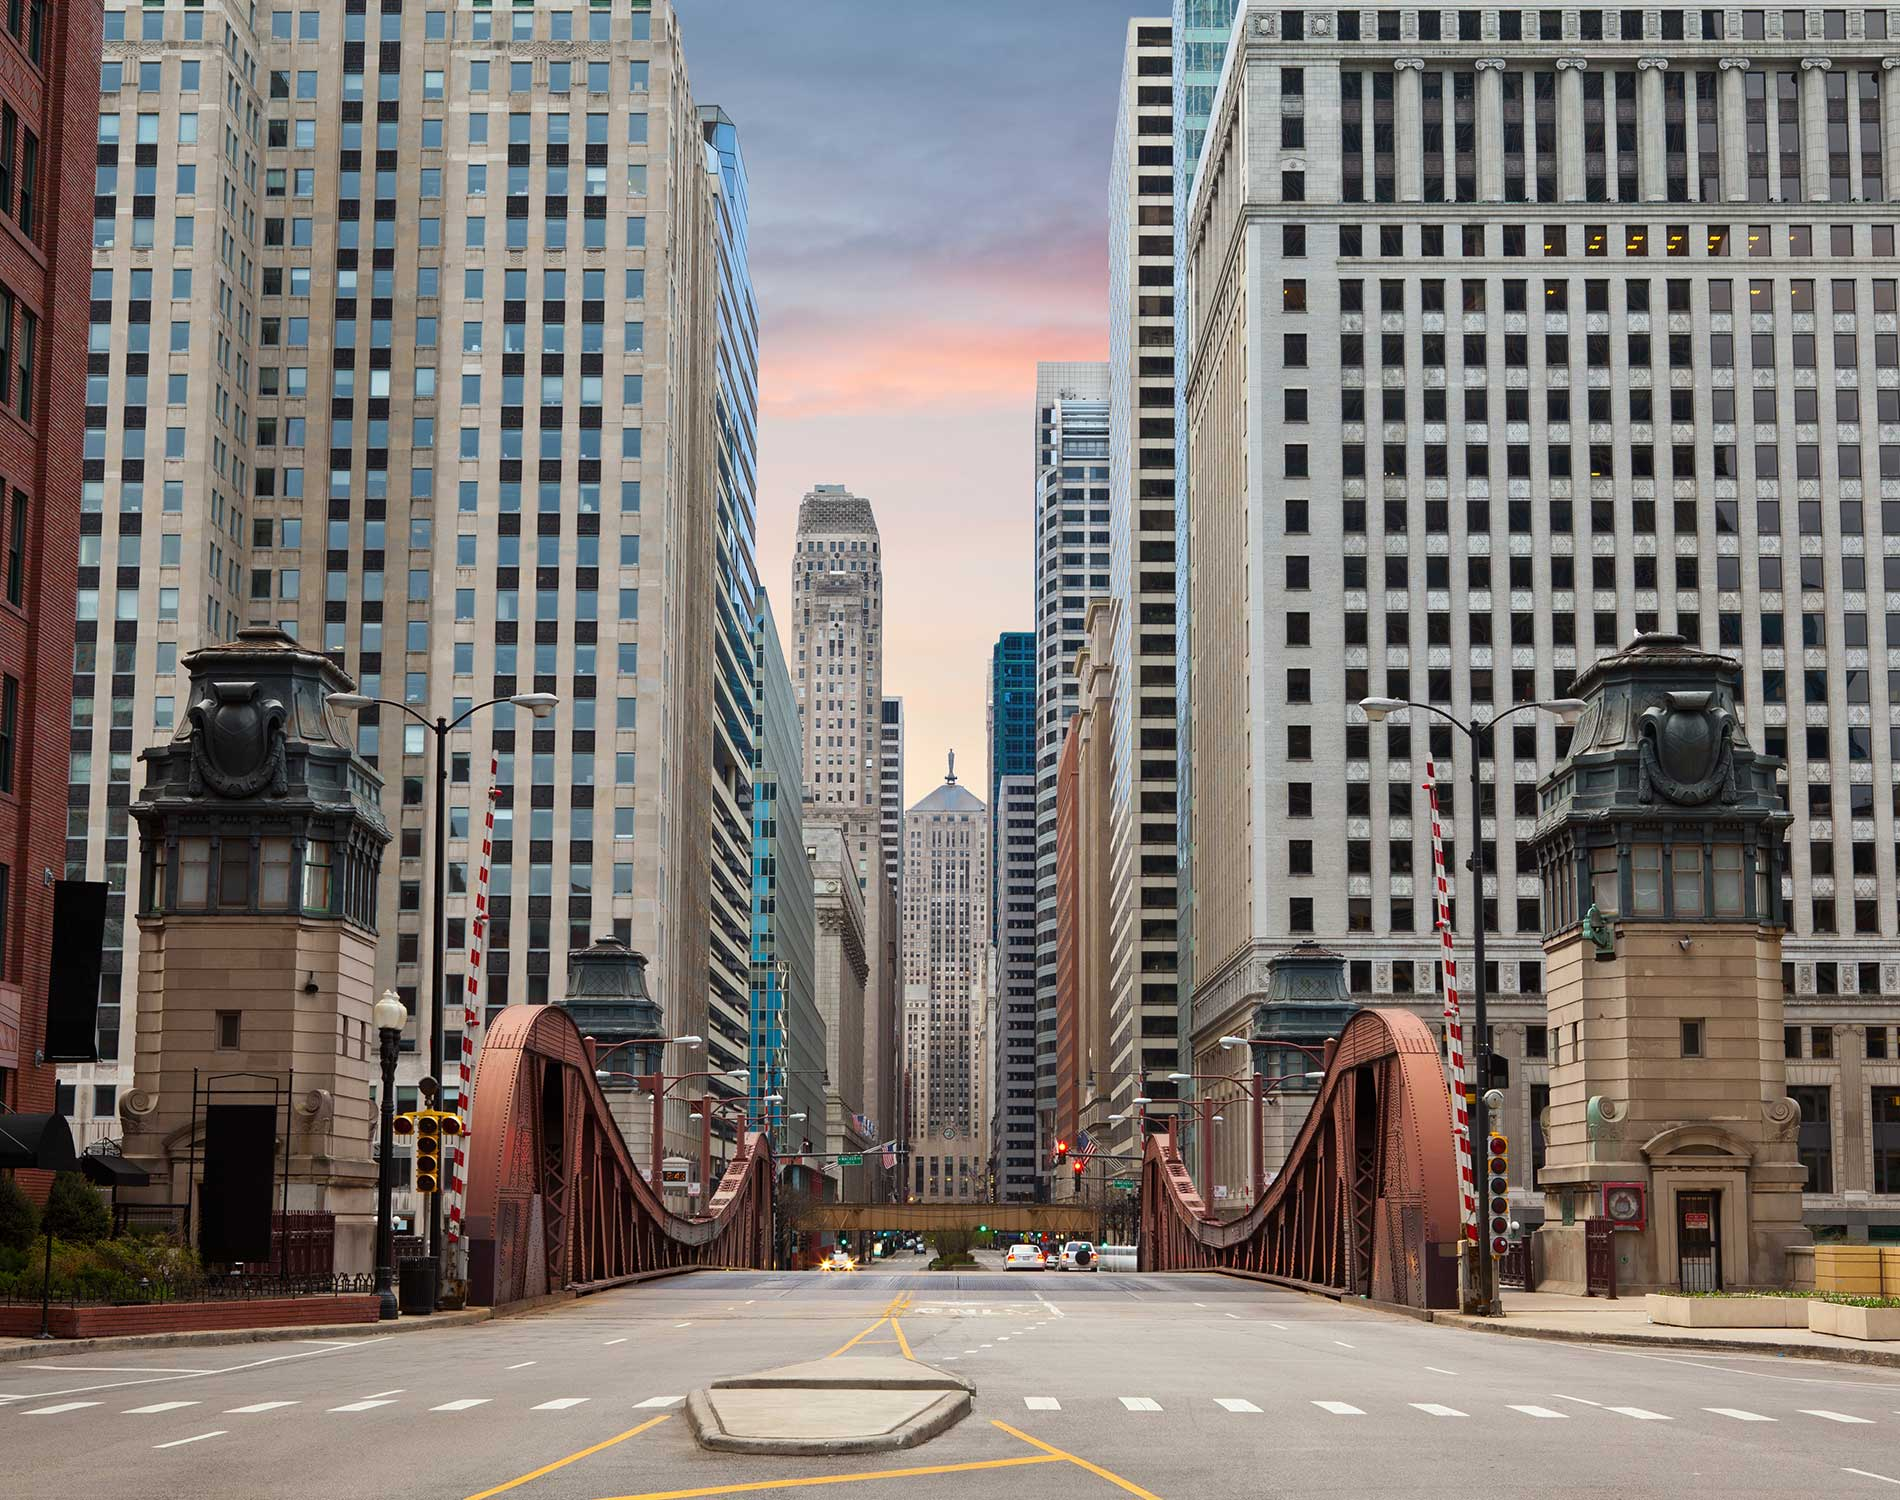 /-/media/images/website/background-images/offices/chicago/chicago_opt_02.jpg